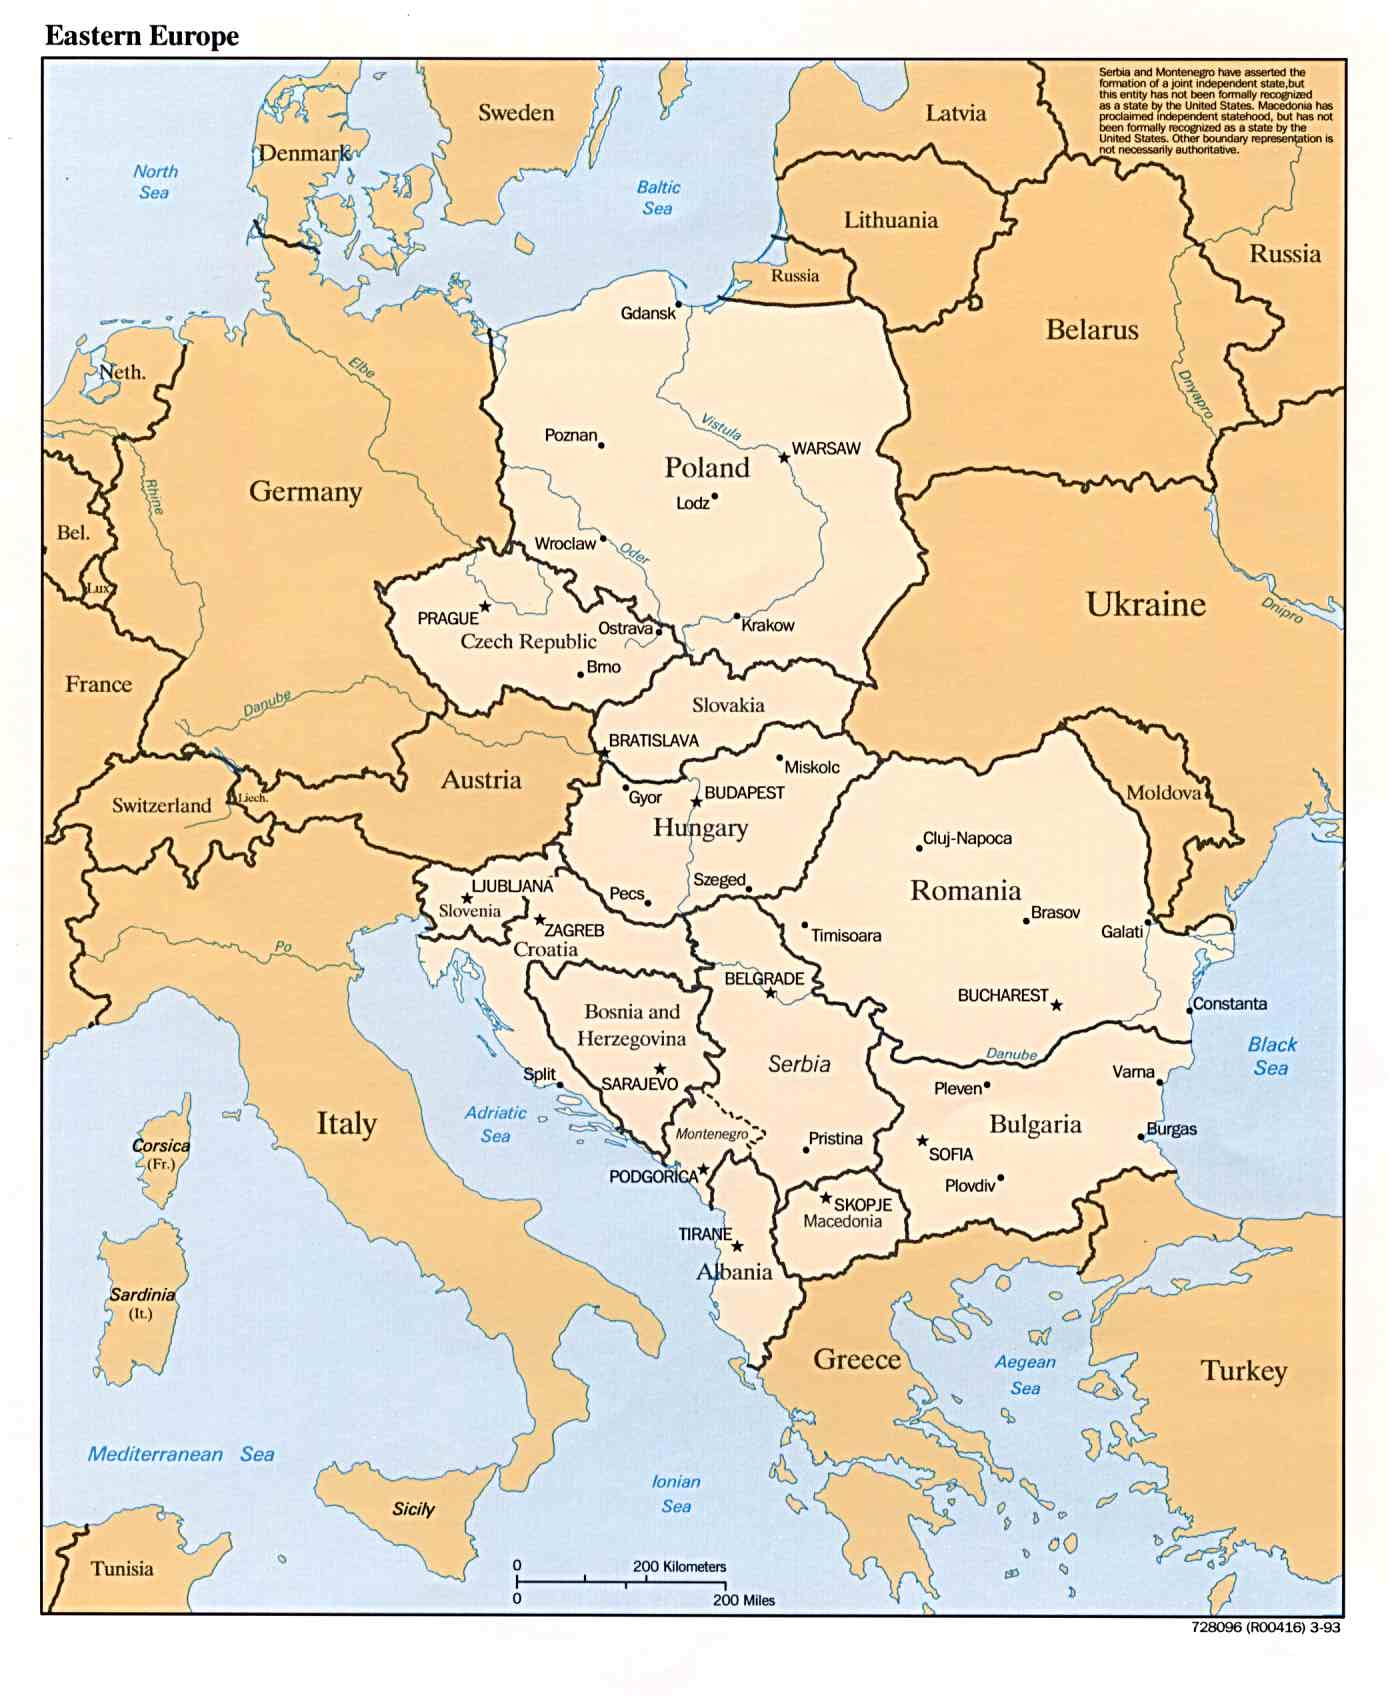 General Map of Eastern Europe